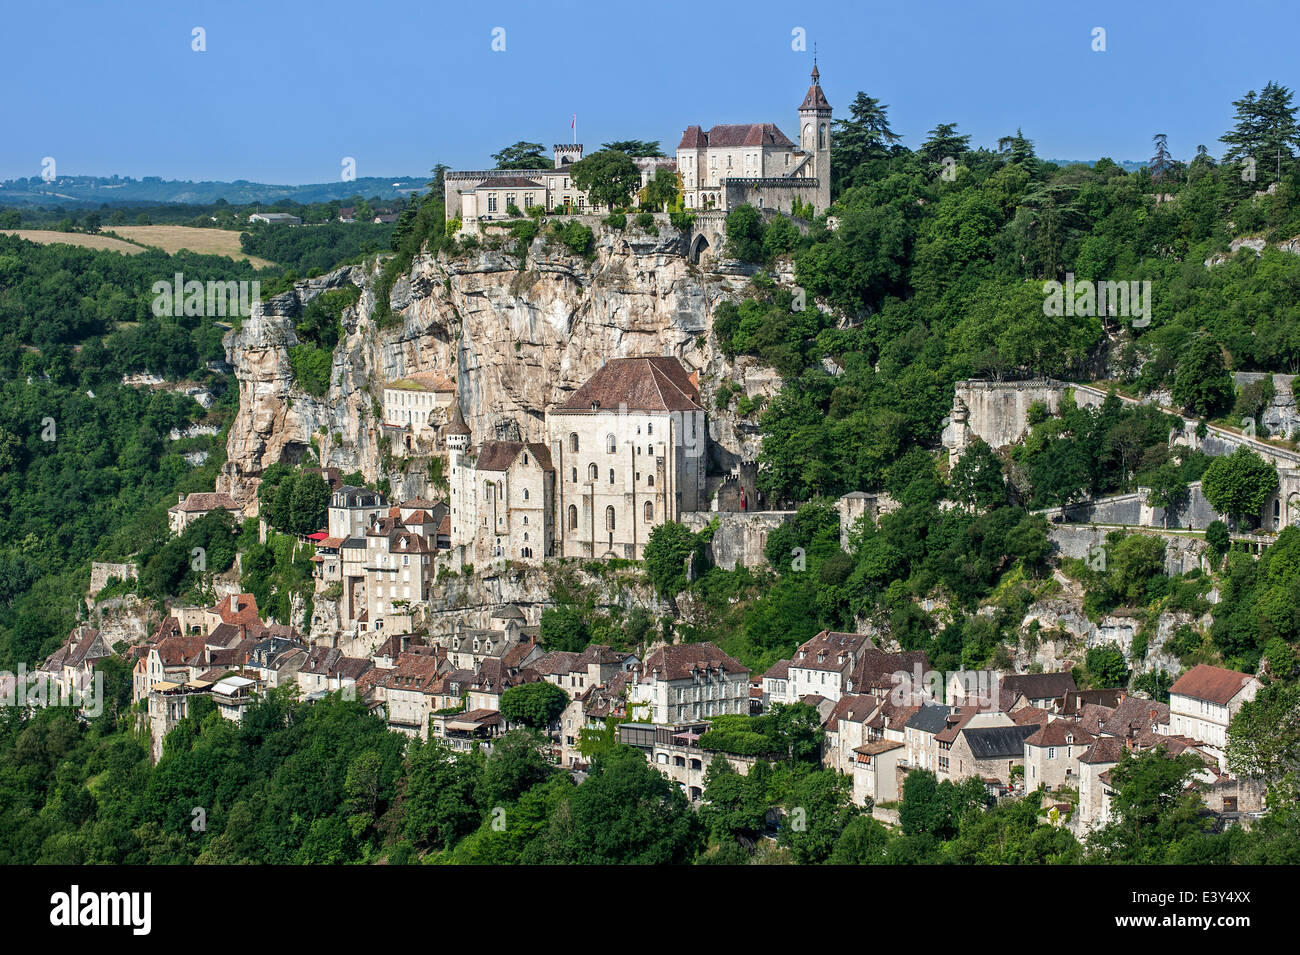 View over Rocamadour, Episcopal city and sanctuary of the Blessed Virgin Mary, Lot, Midi-Pyrénées, France - Stock Image